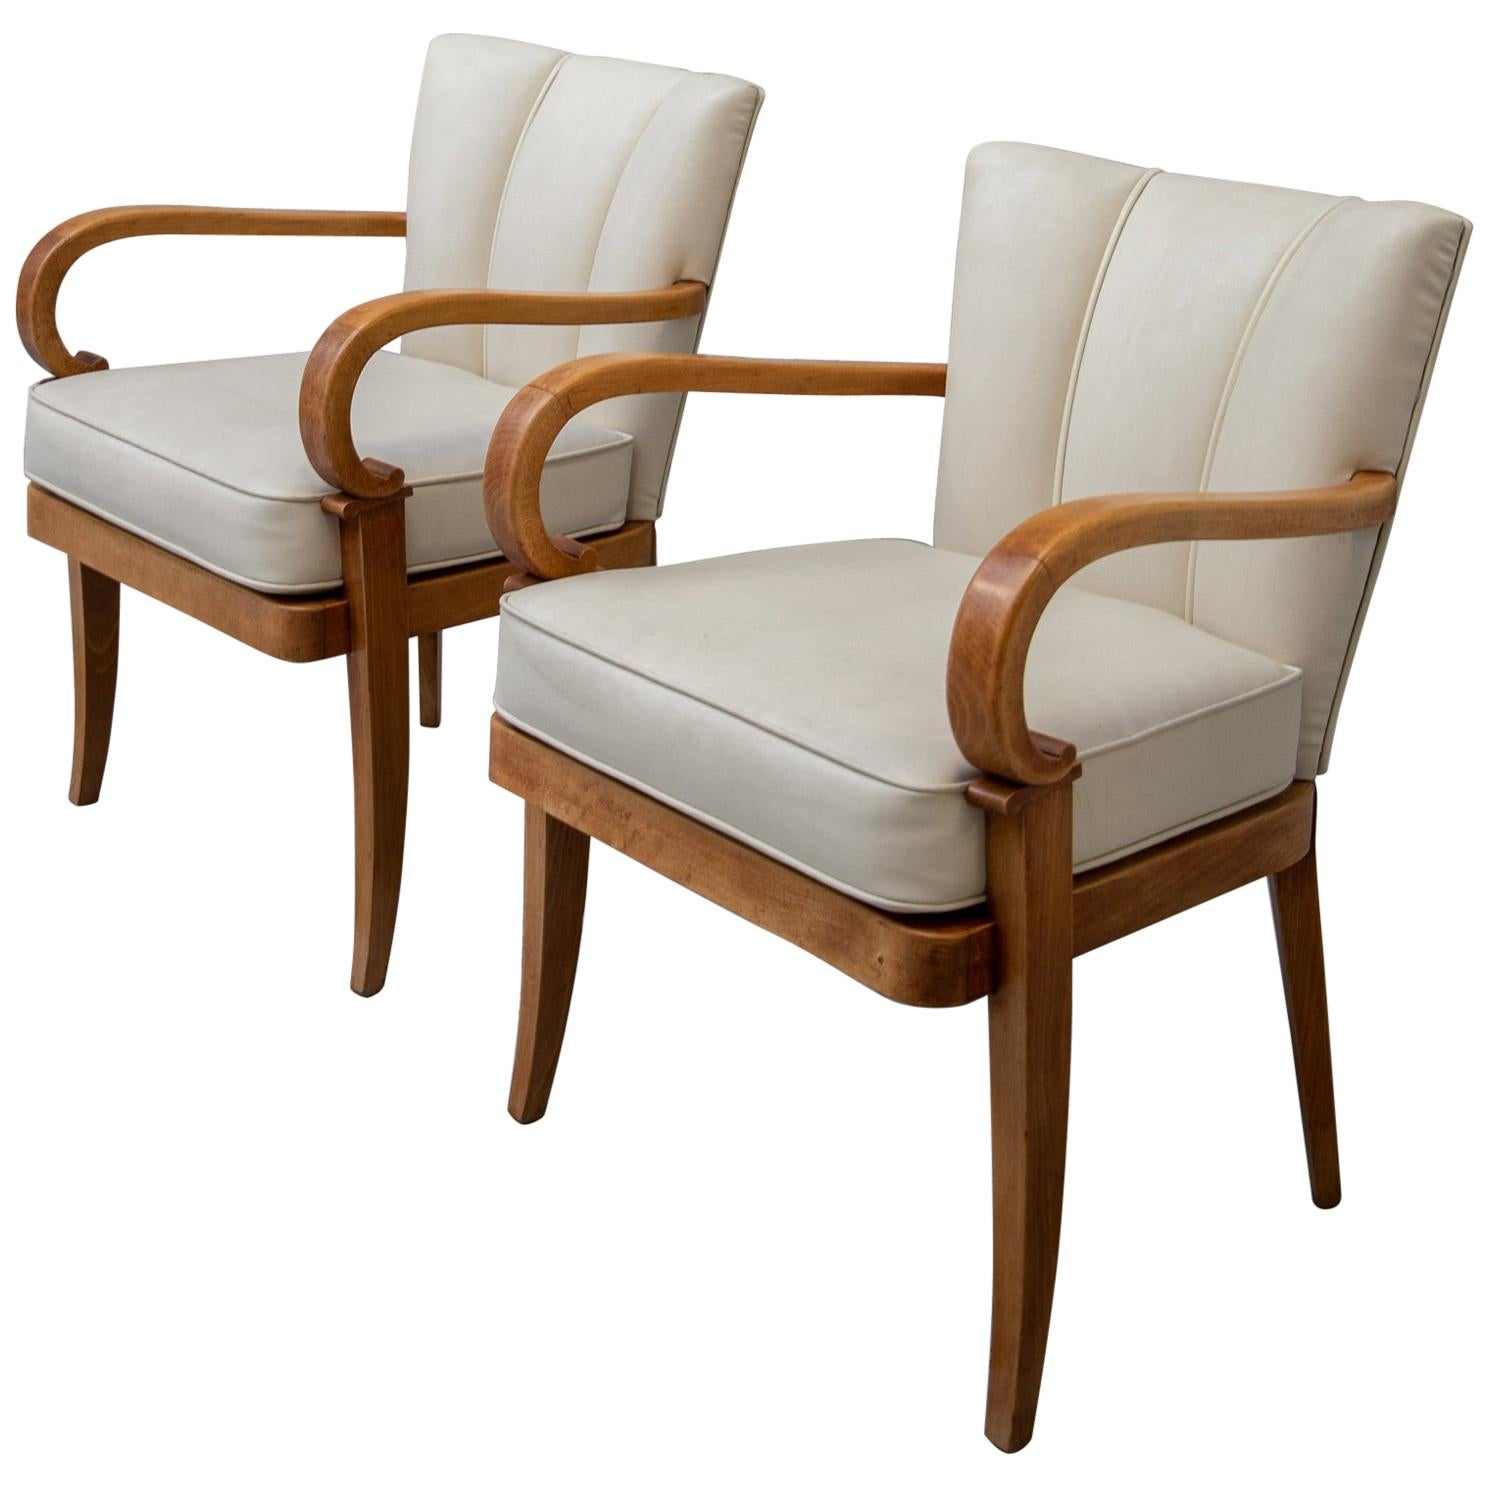 A Pair of Cherrywood Armchairs in the Manner of Jean Pascaud, circa 1940